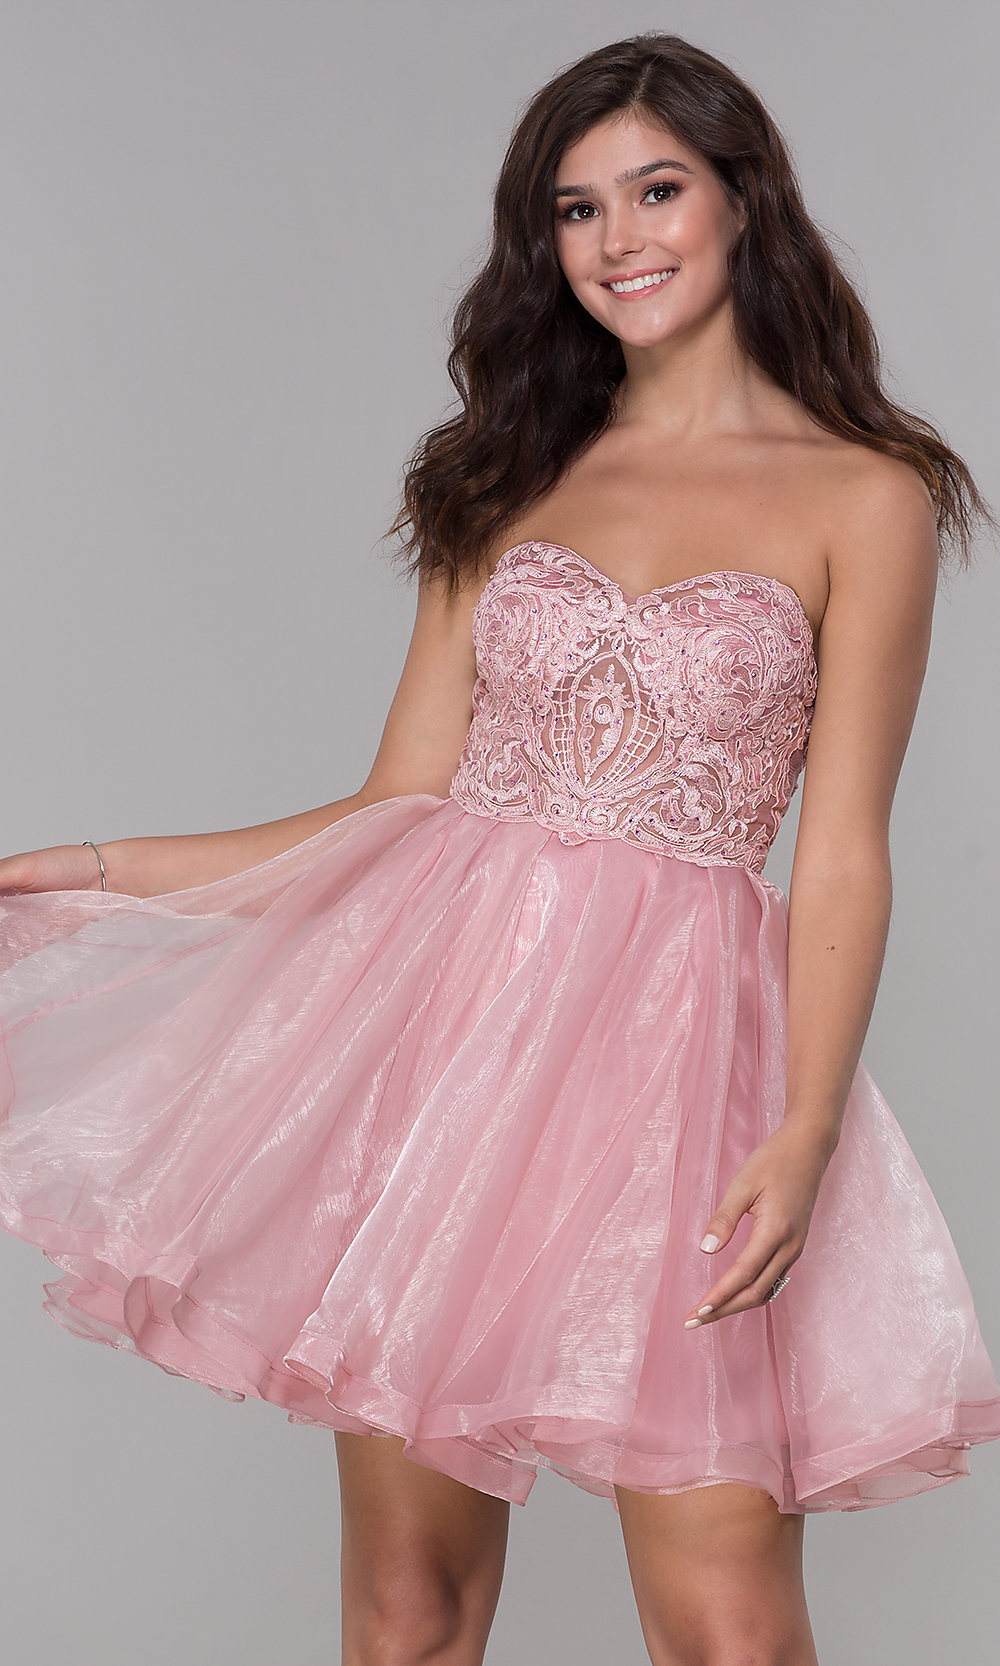 exceptional range of styles and colors designer fashion exquisite craftsmanship Pink Short Strapless Sweetheart Homecoming Dress